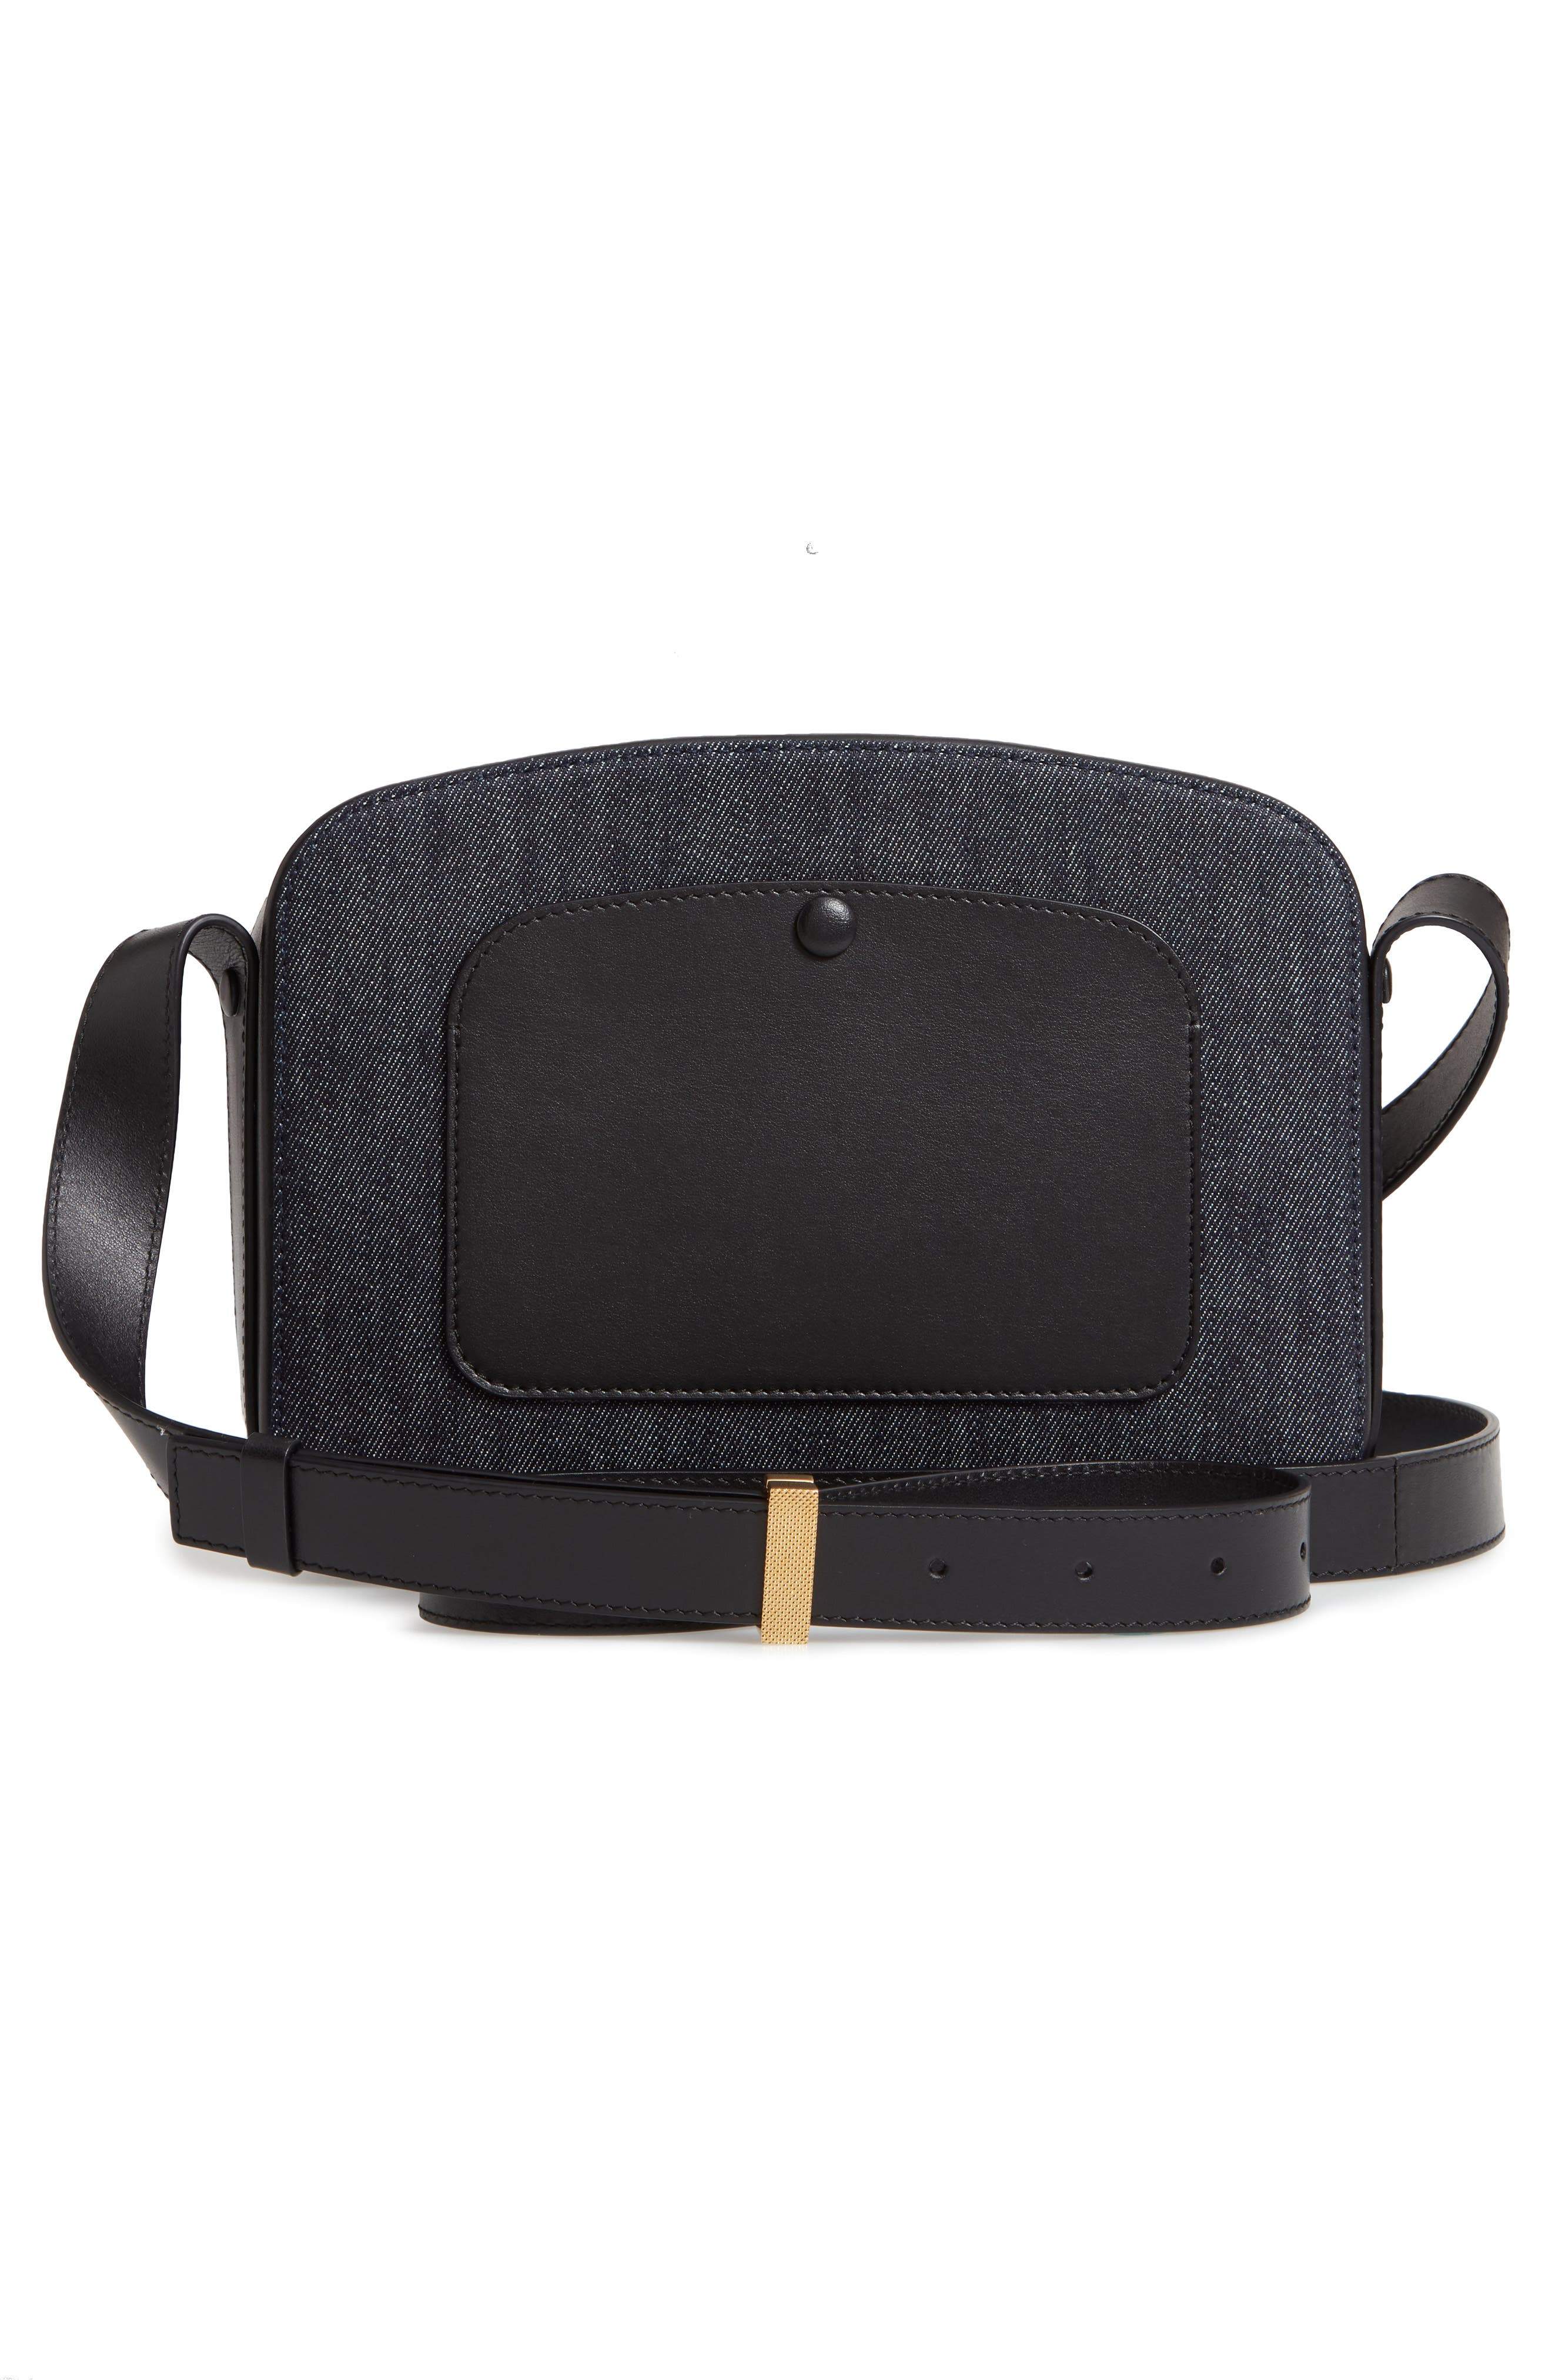 VICTORIA BECKHAM, Vanity Denim & Leather Camera Bag, Alternate thumbnail 3, color, INDIGO/ BLACK